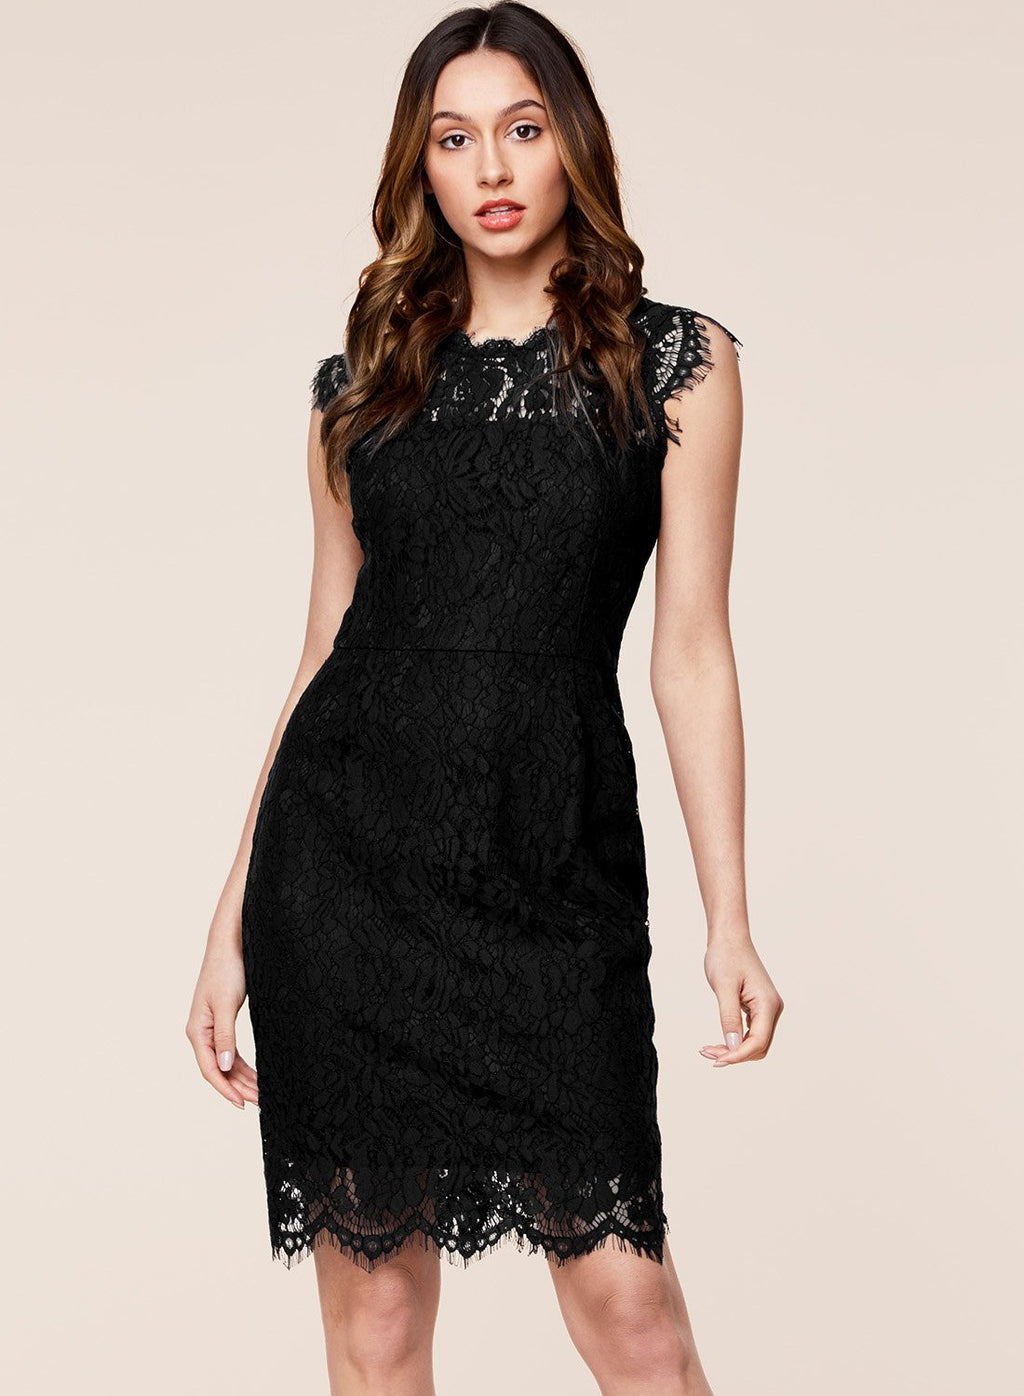 Floral Lace Sleeveless Cocktail Party Dress